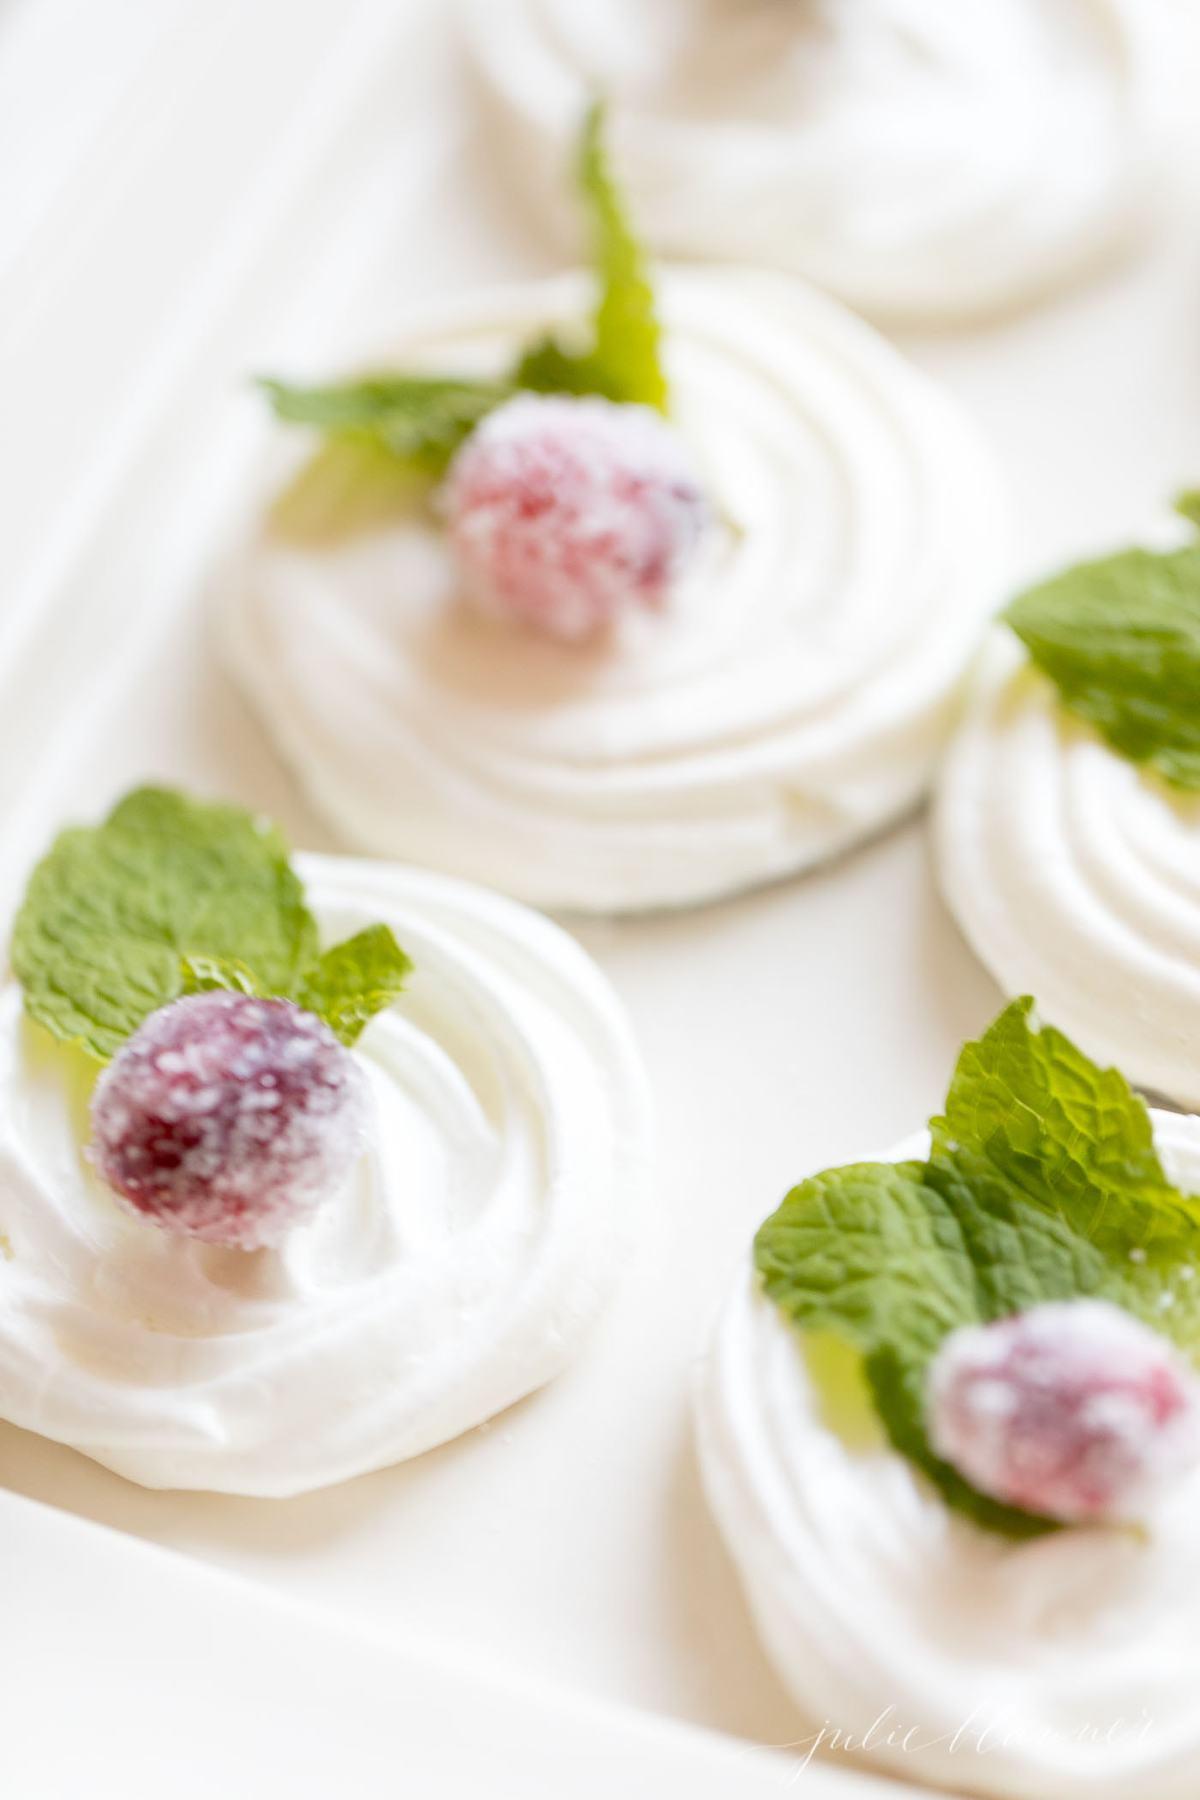 Decorated meringues on a serving tray